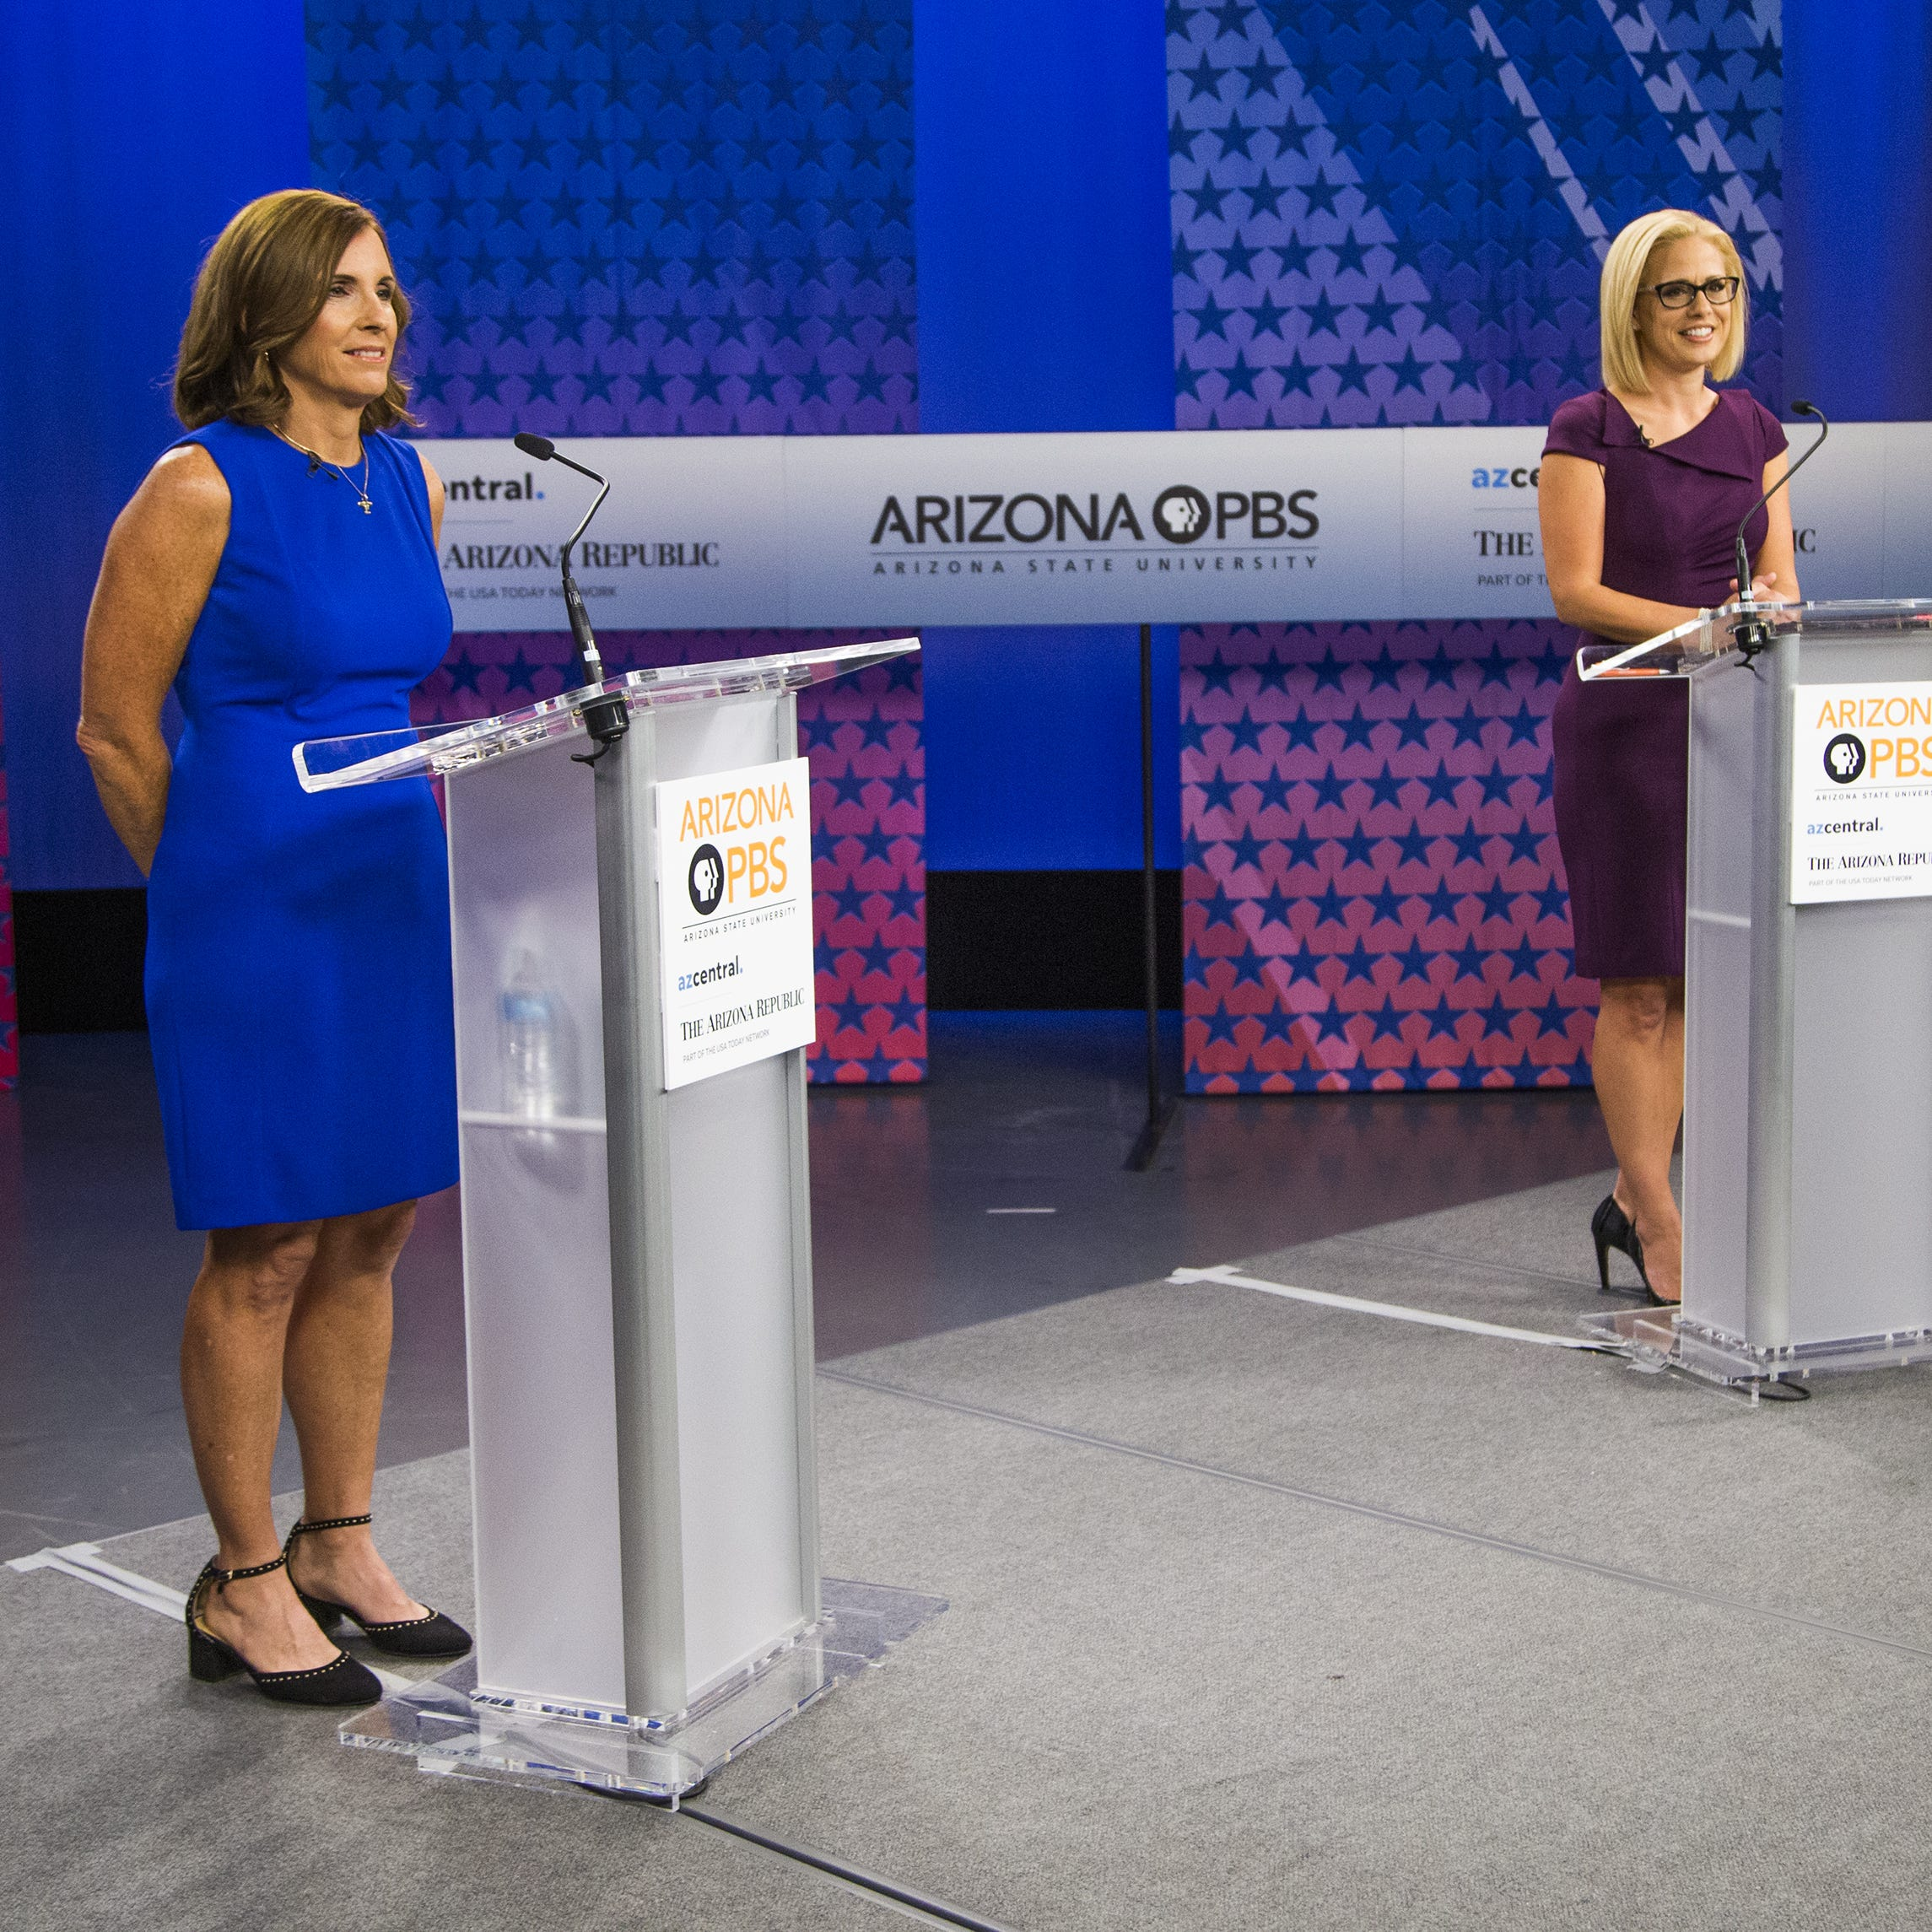 Does Martha McSally think Arizona voters are stupid? You bet she does